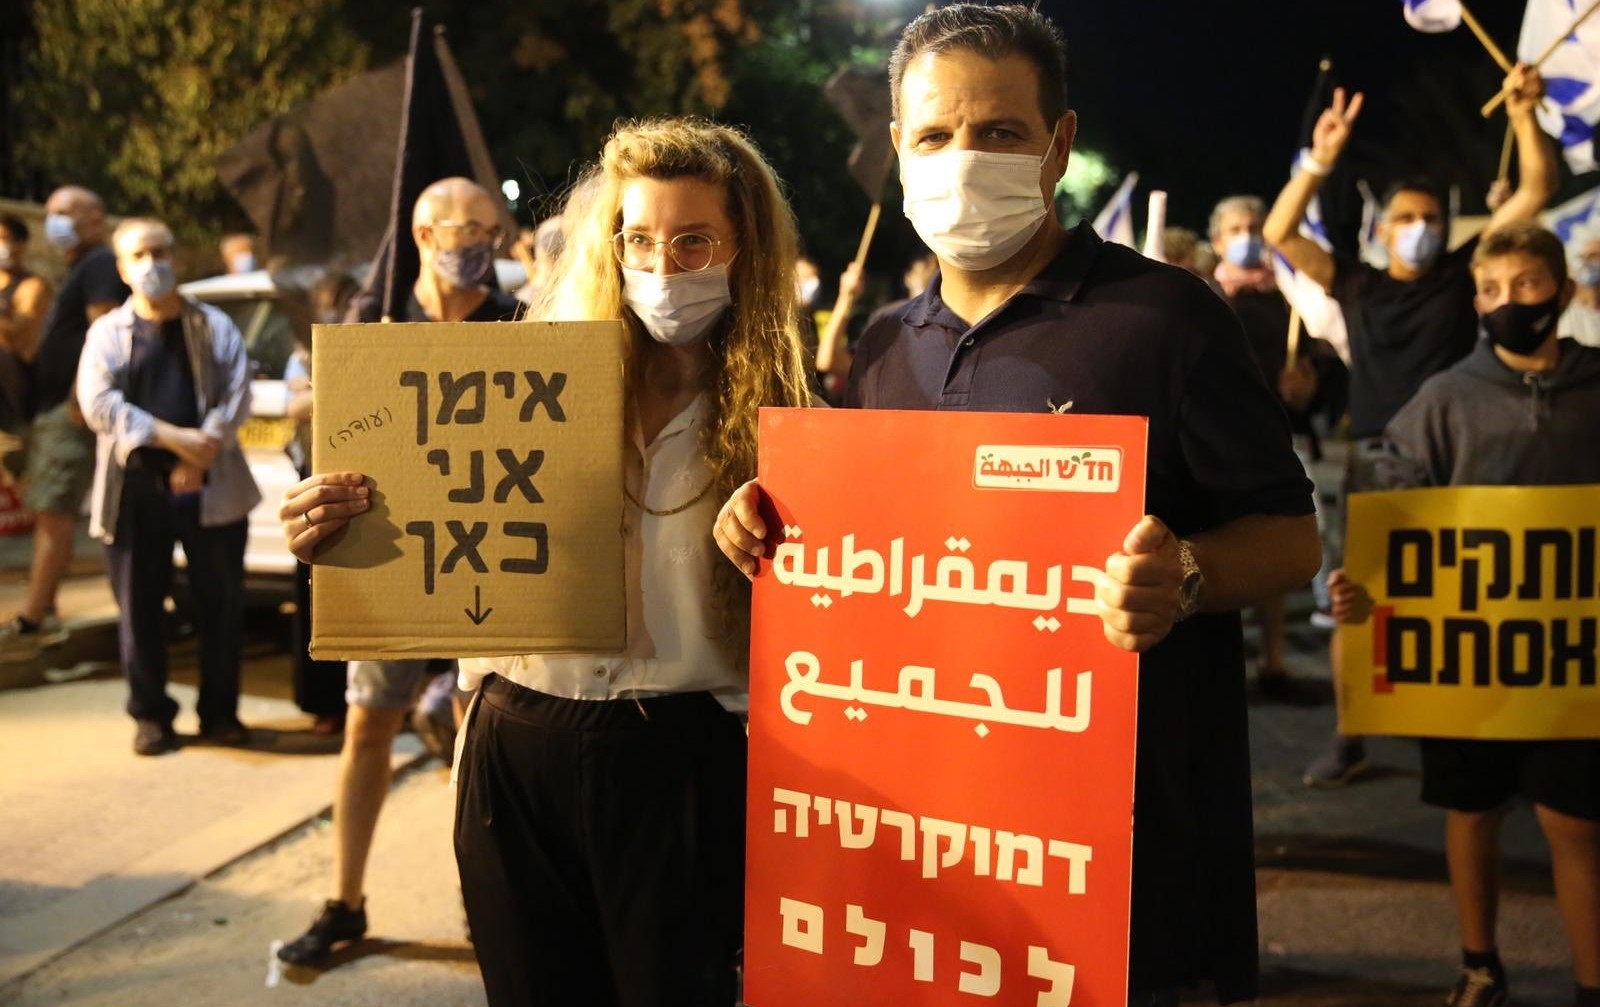 """MK Ayman Odeh holds a Hadash placard that reads in Arabic and Hebrew """"Democracy for all"""" during the anti-government protest in Paris Square, near the PM's official residence, on Saturday night, August 22. The women protester next to Odeh holds a sign in Hebrew reading """"Ayman, I'm here."""""""